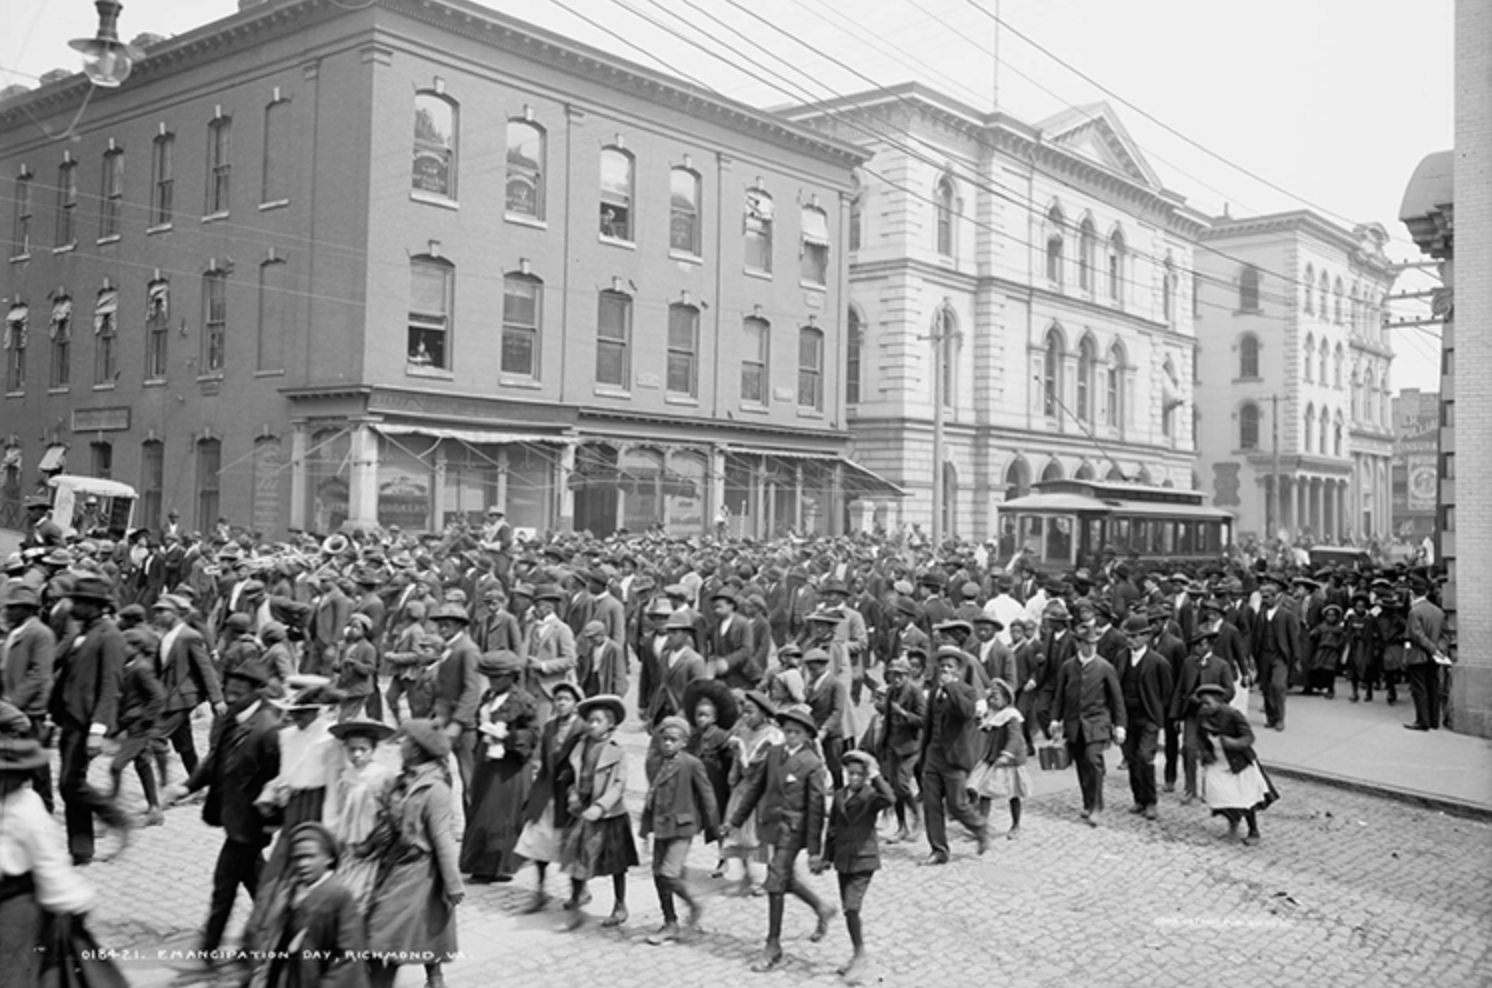 Juneteenth: A Story of Freedom